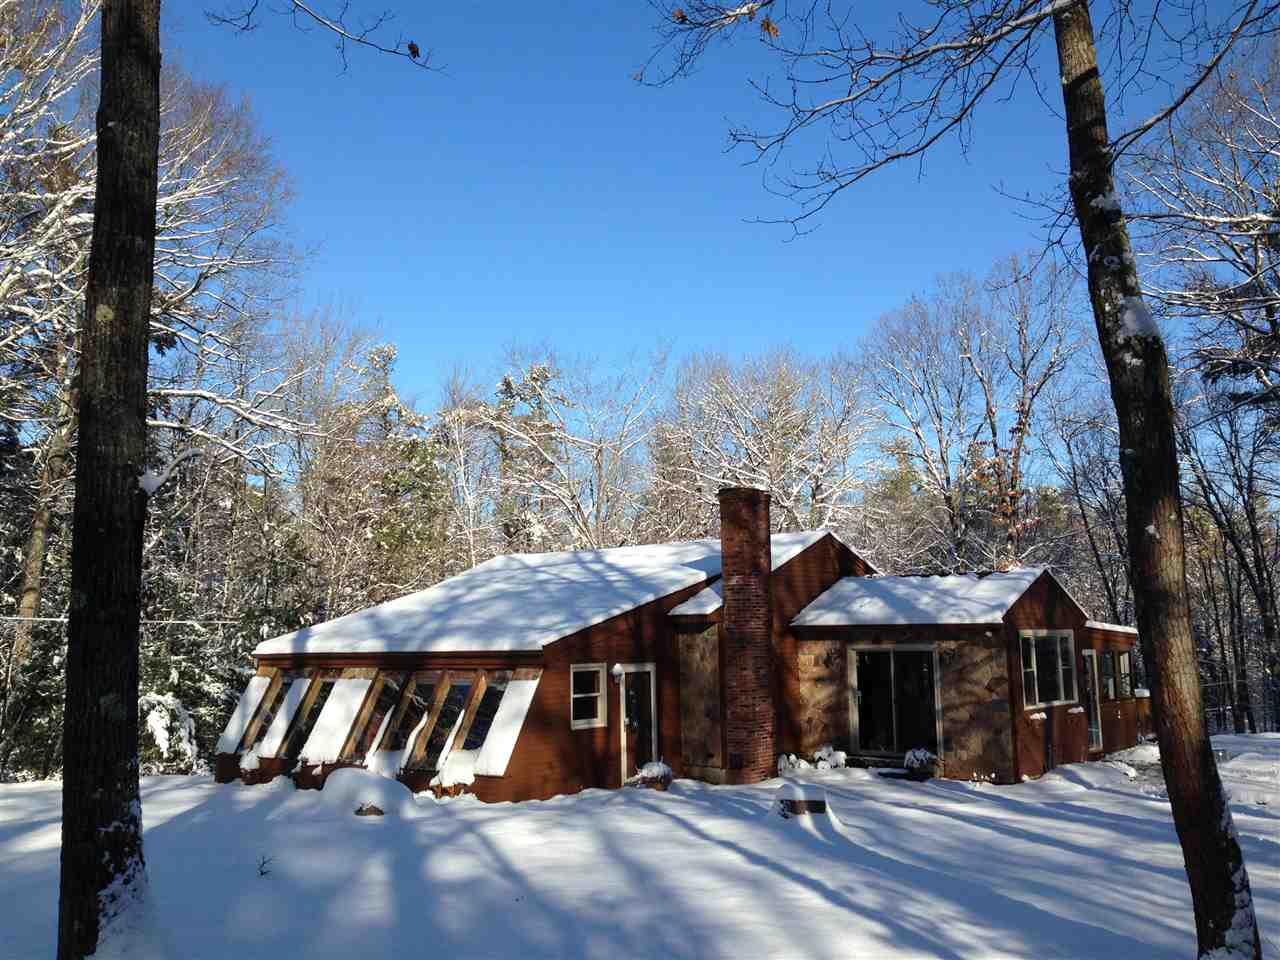 369 CHESTER TURNPIKE, CANDIA, NH 03034  Photo 2